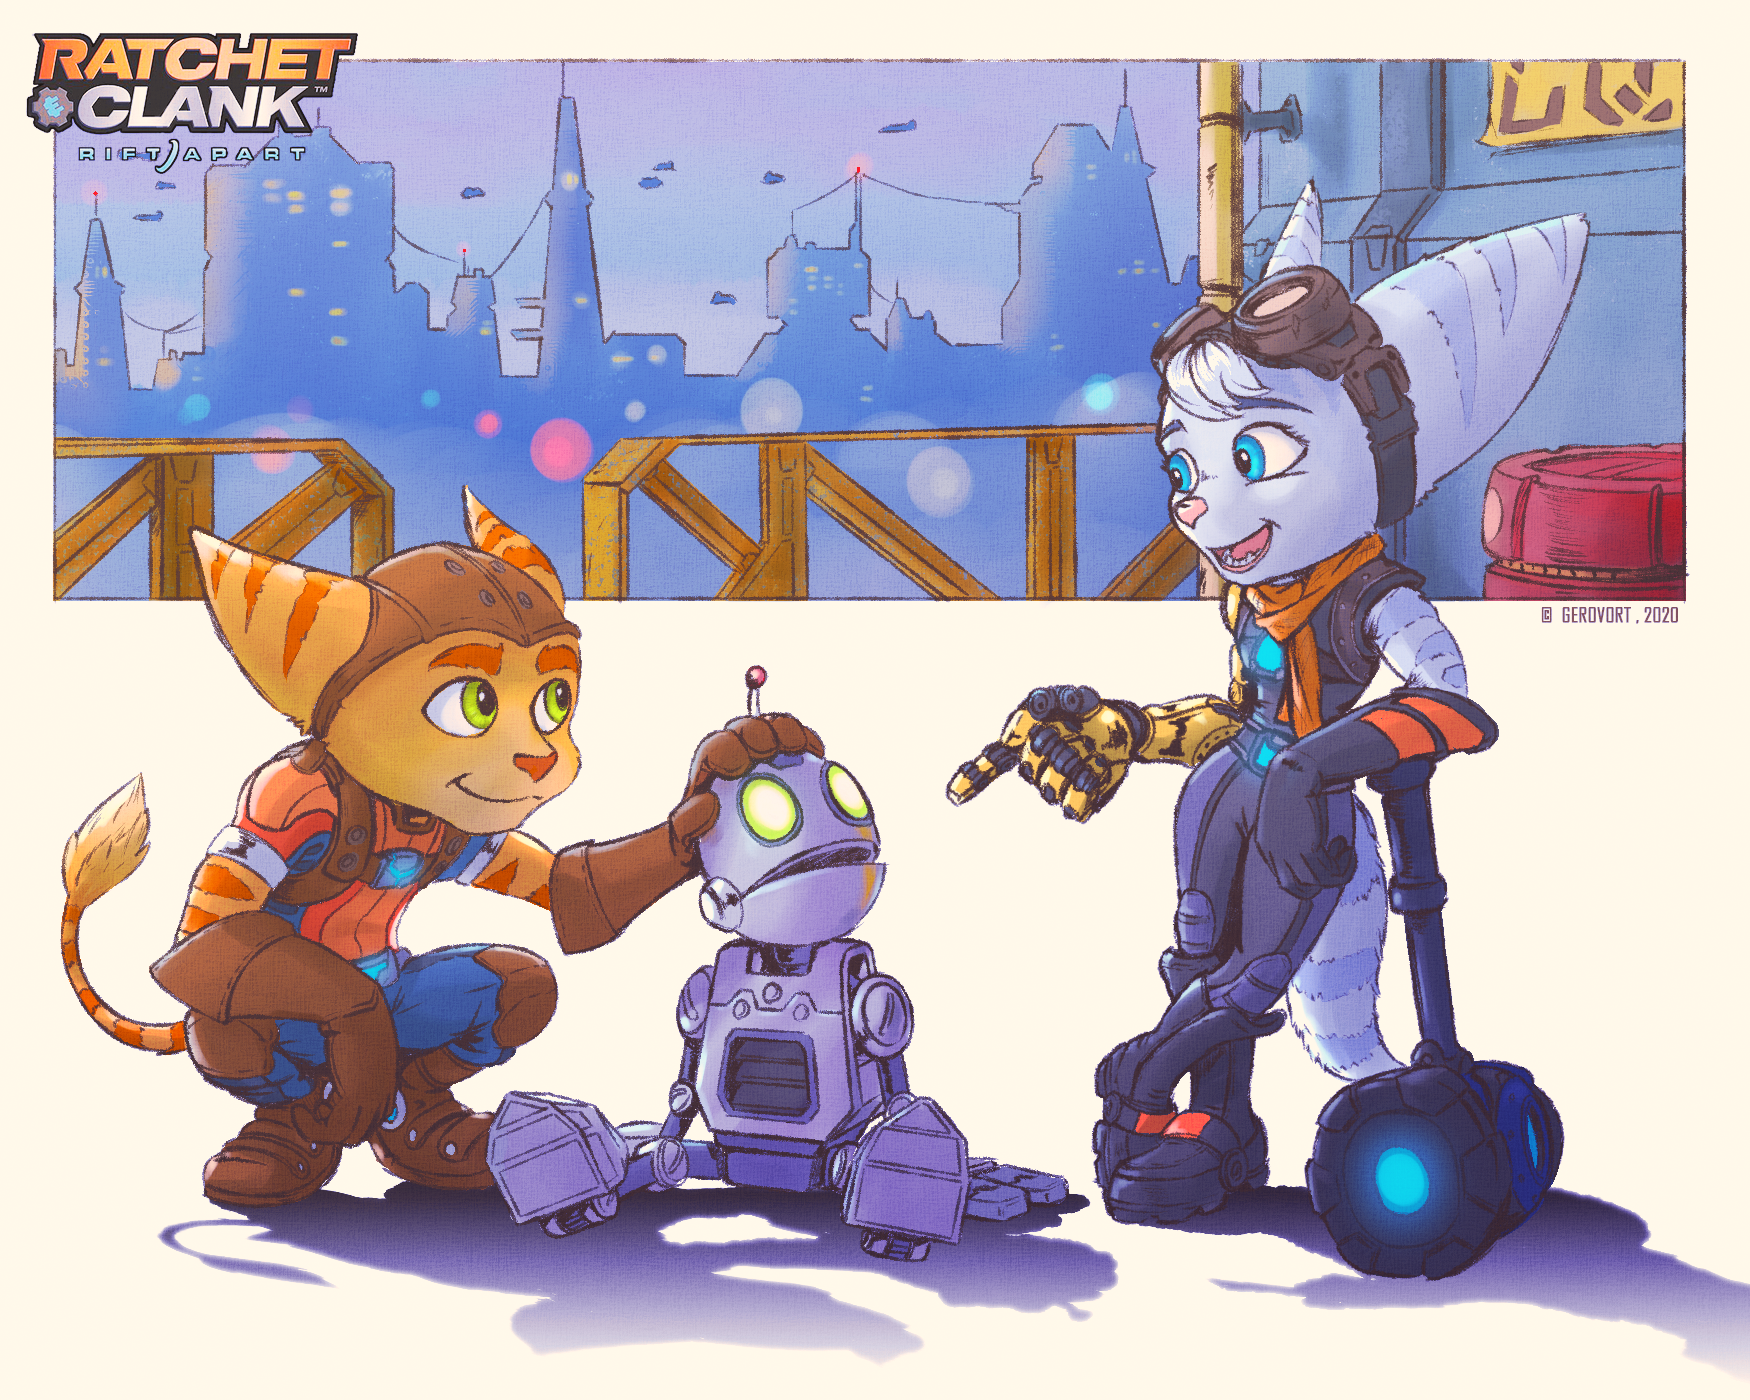 Ratchet And Clank Rift Apart By Gerovort On Deviantart